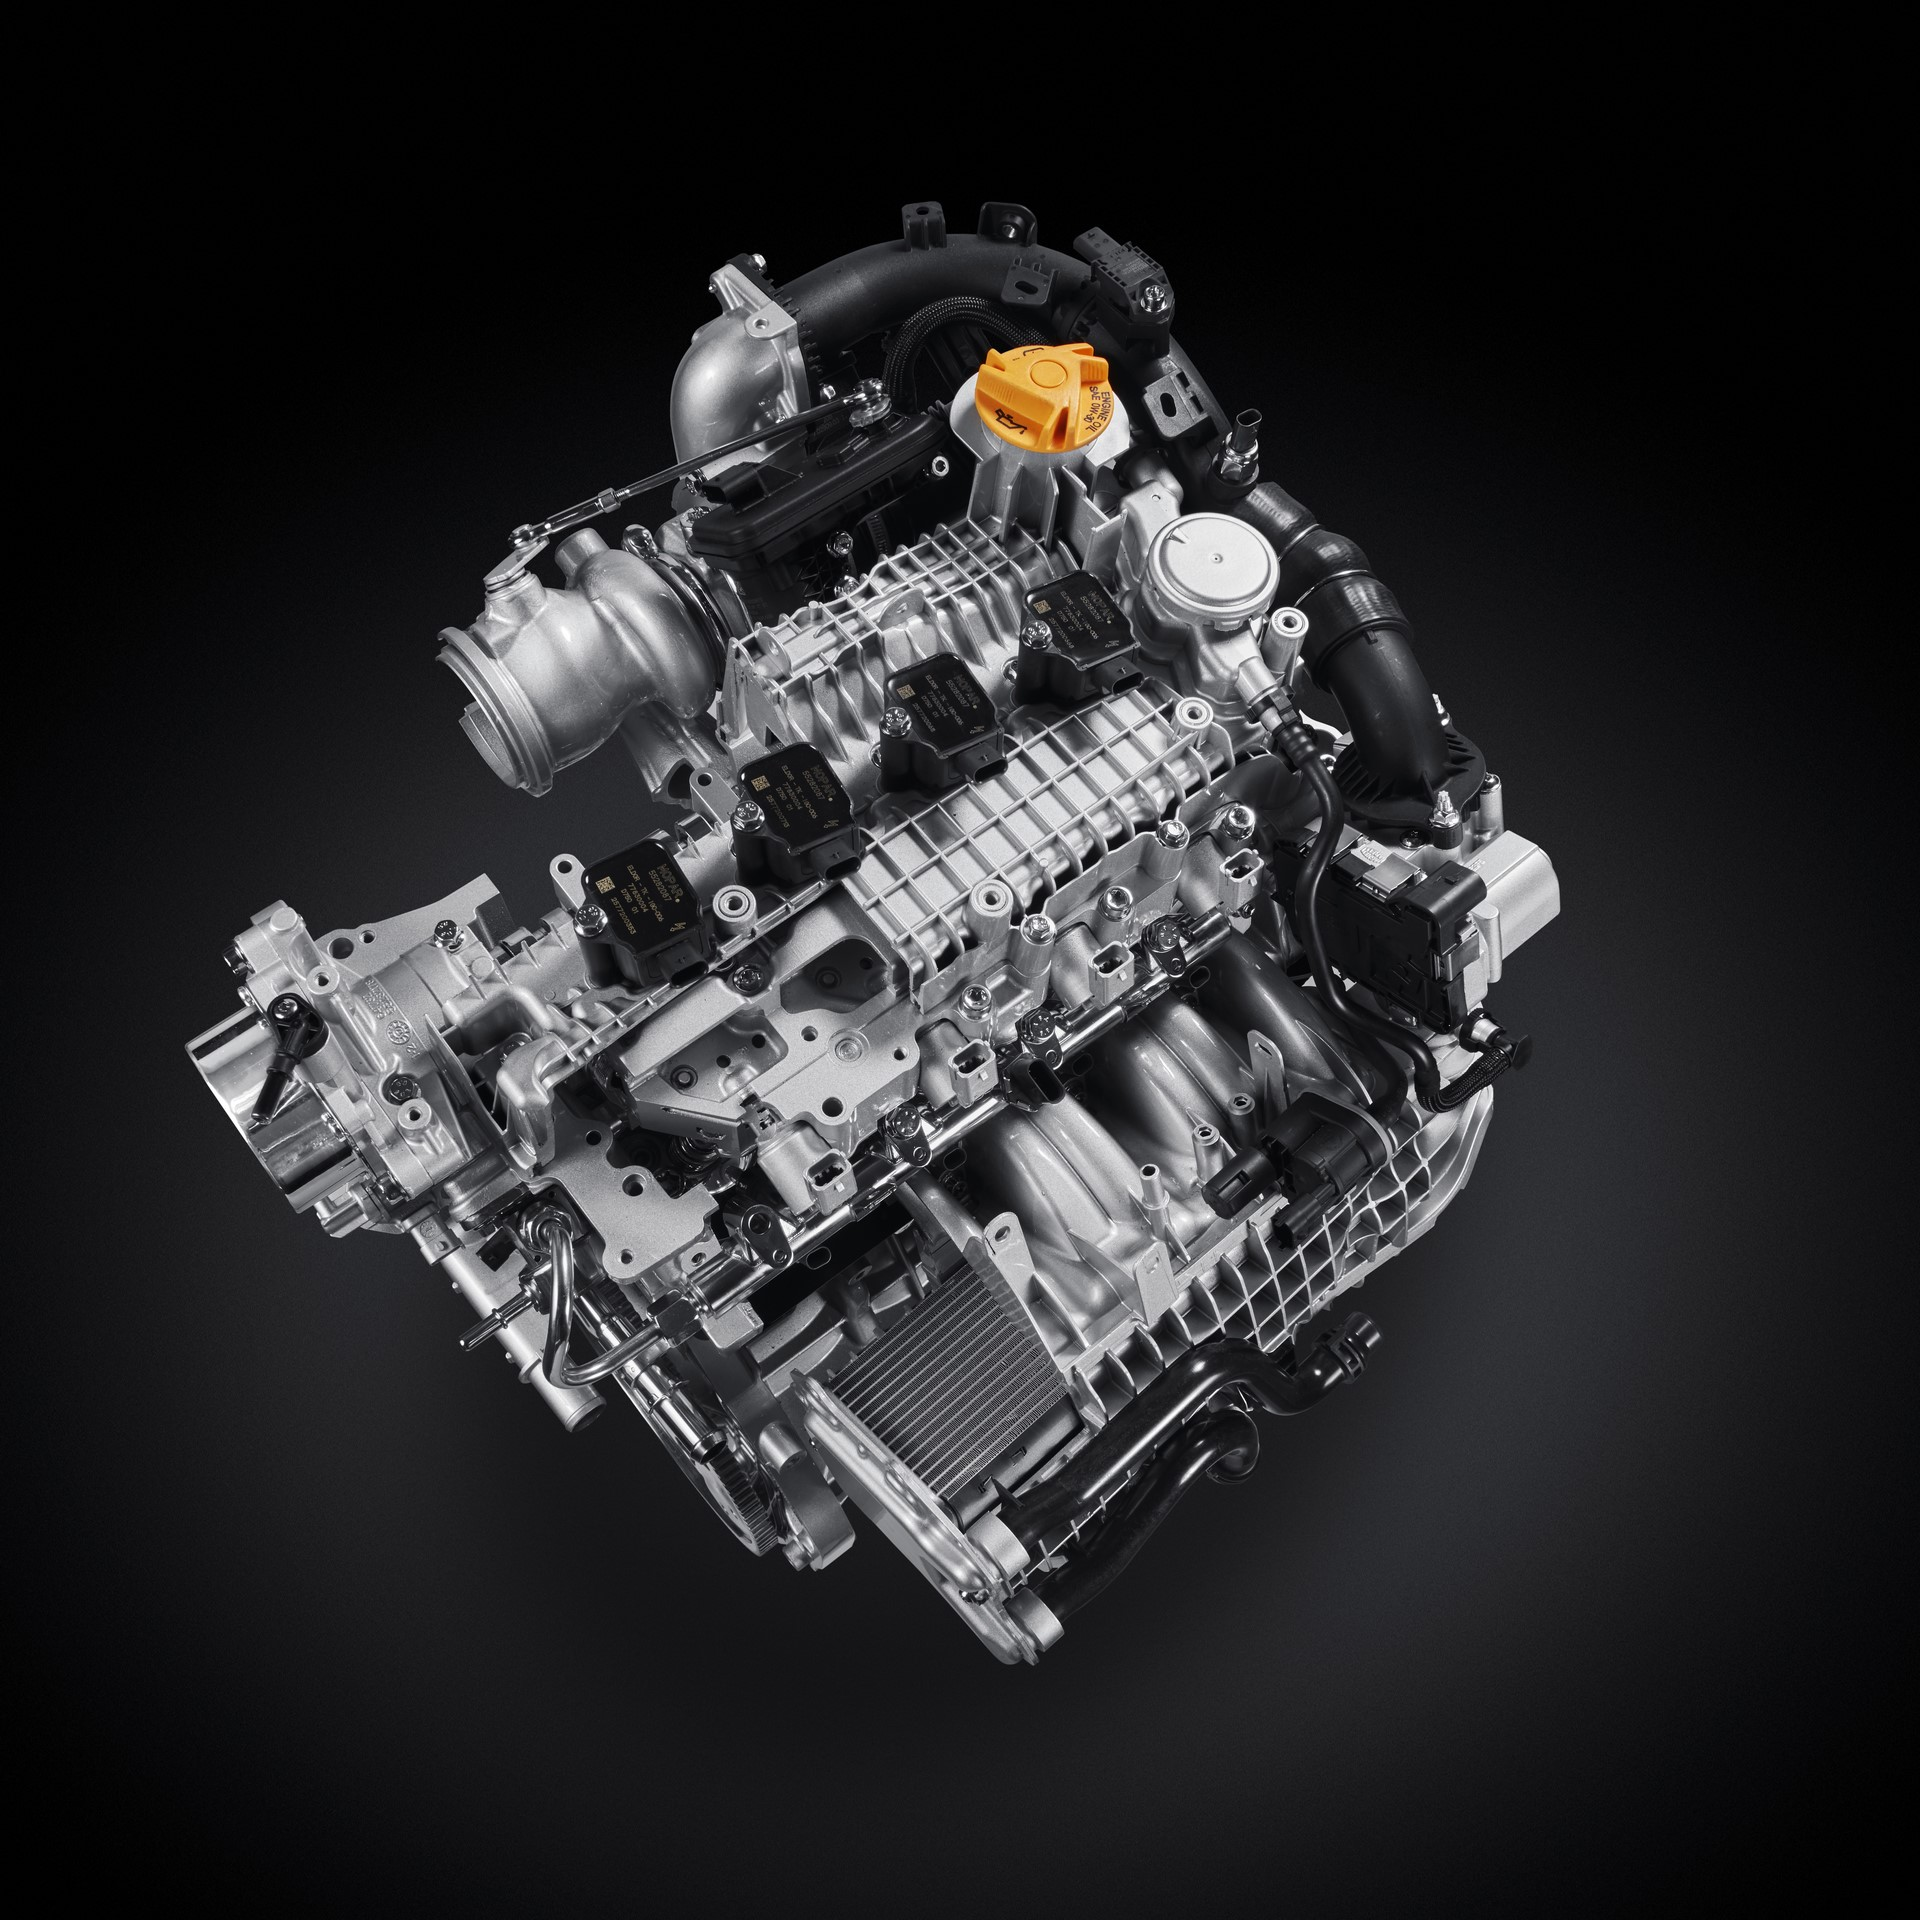 New-13L-Turbo-4-cylinder-150HP_20